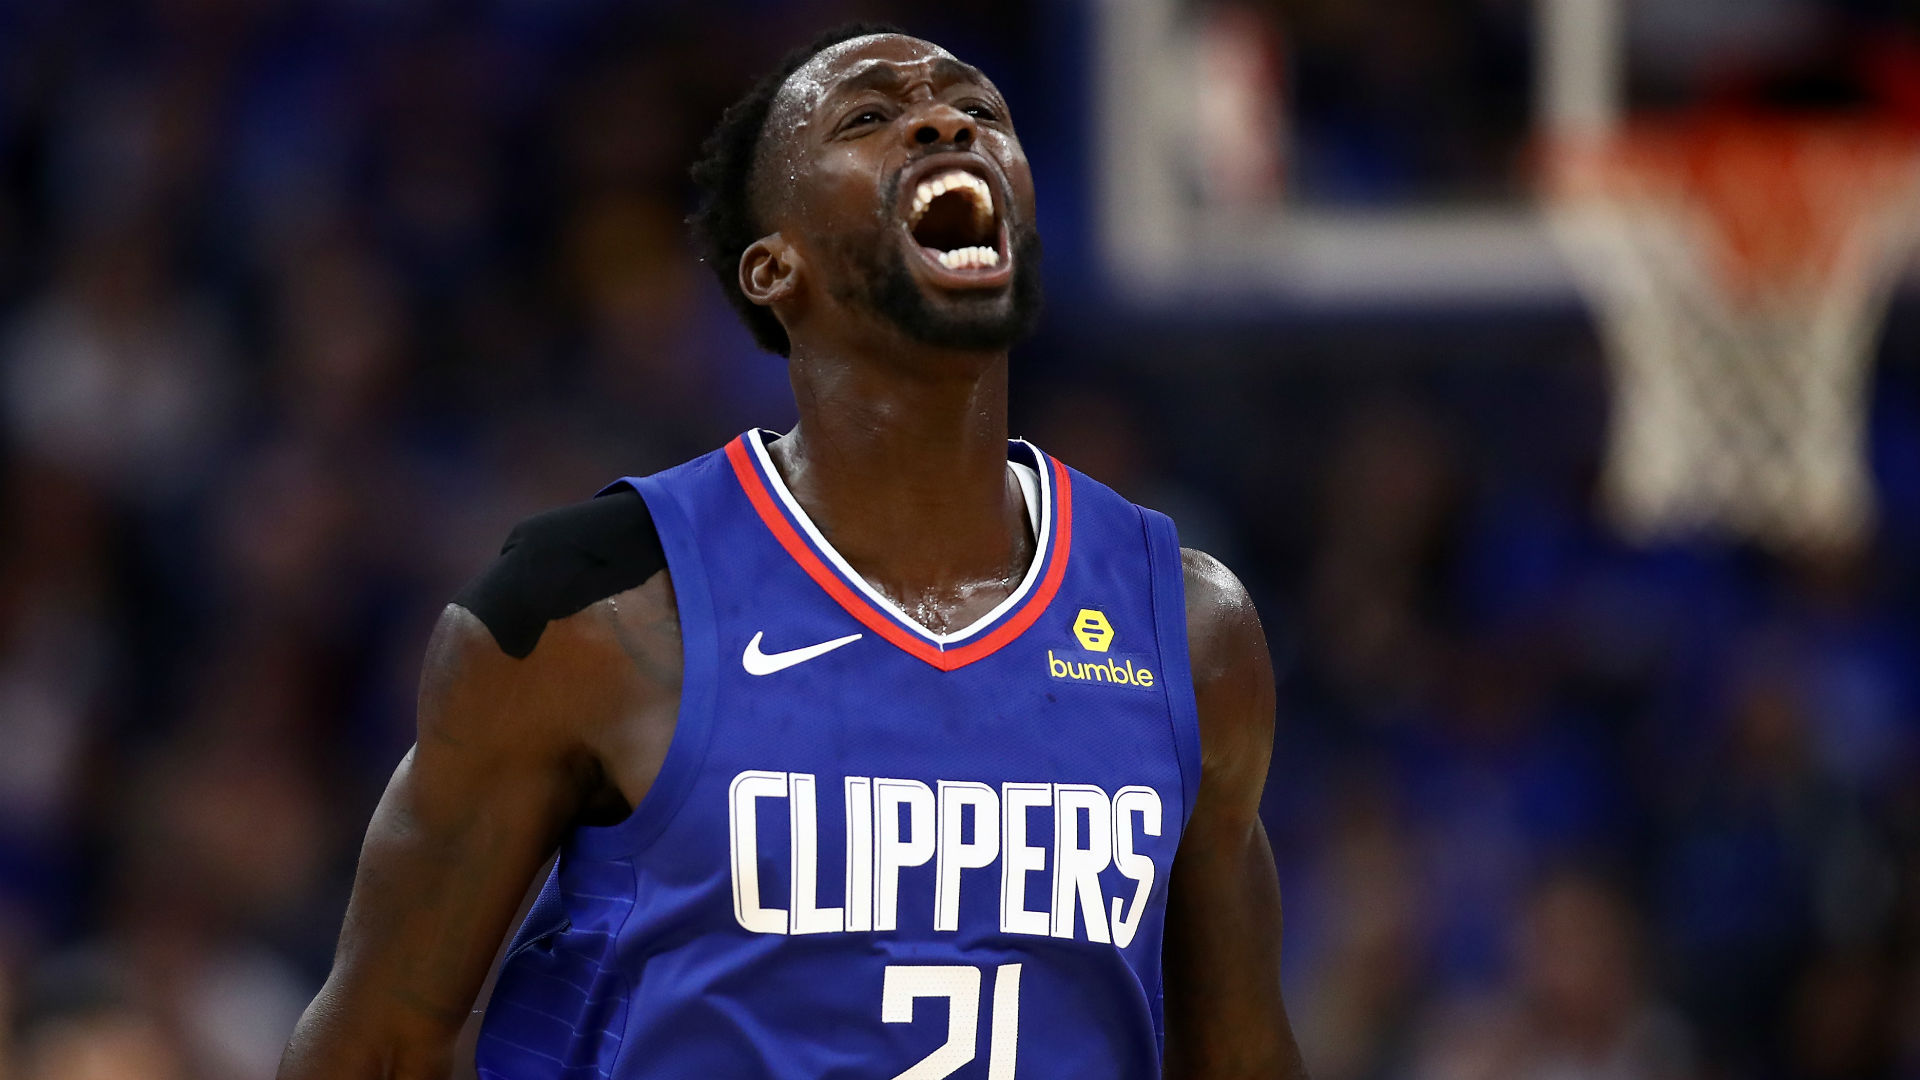 Clippers' Patrick Beverley ejected for Flagrant 2 foul against Suns' Chris Paul